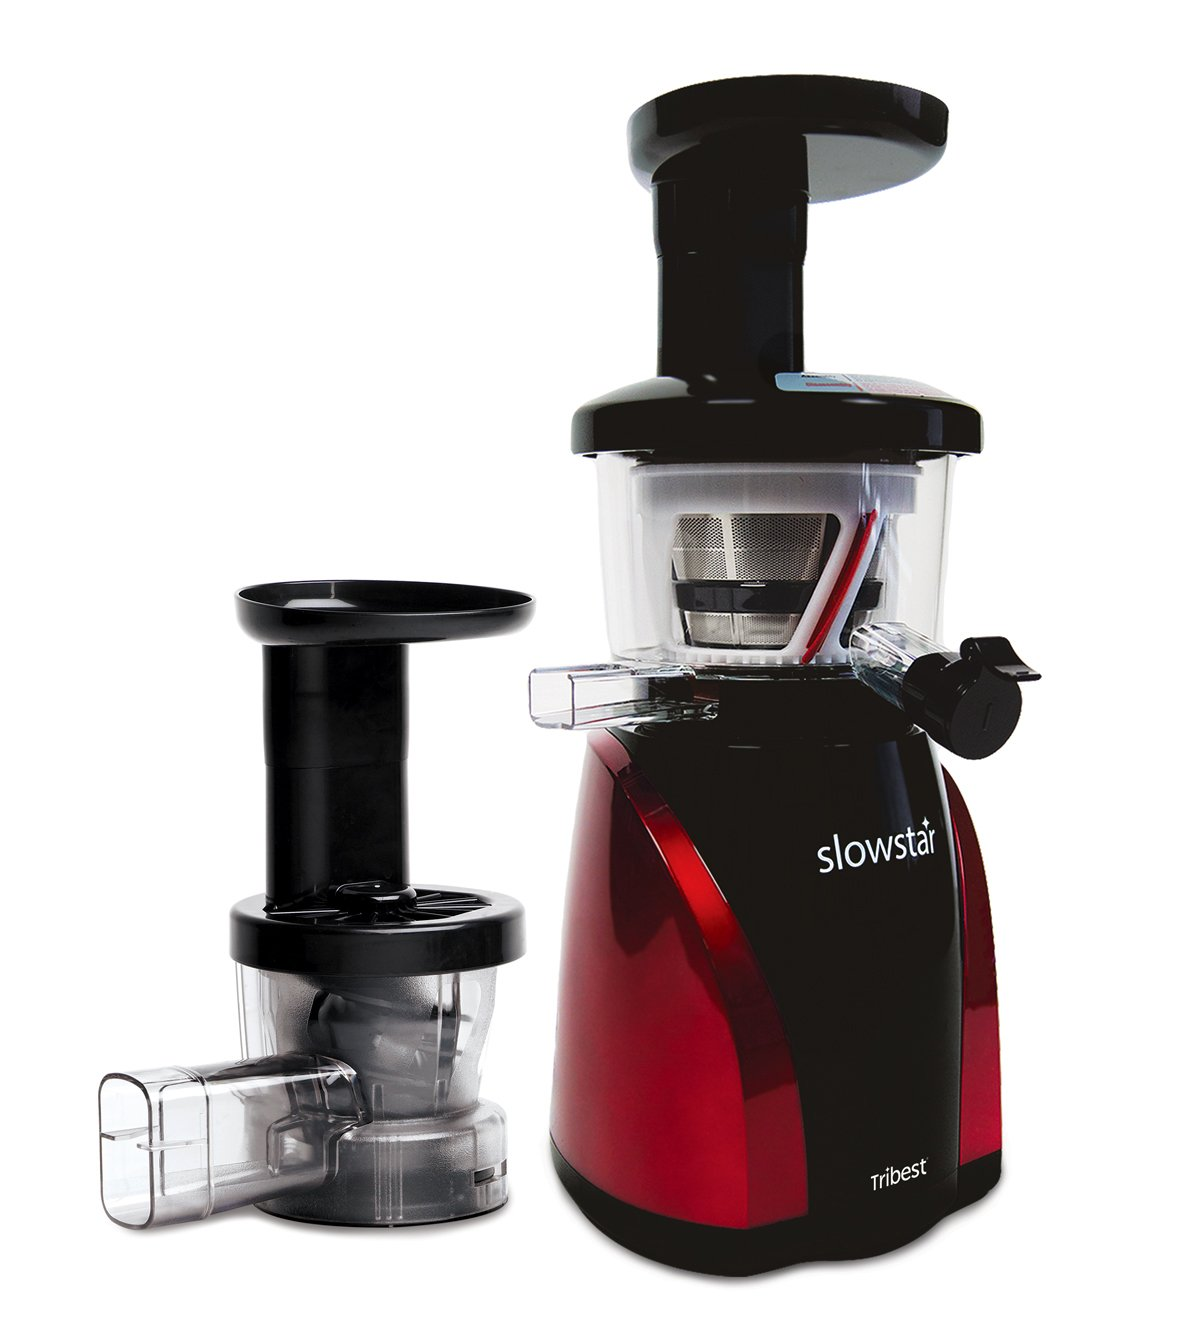 Tribest Slowstar Vertical Slow Juicer and Mincer SW-2000, Cold Press Masticating Juice Extractor in Red and Black by Tribest